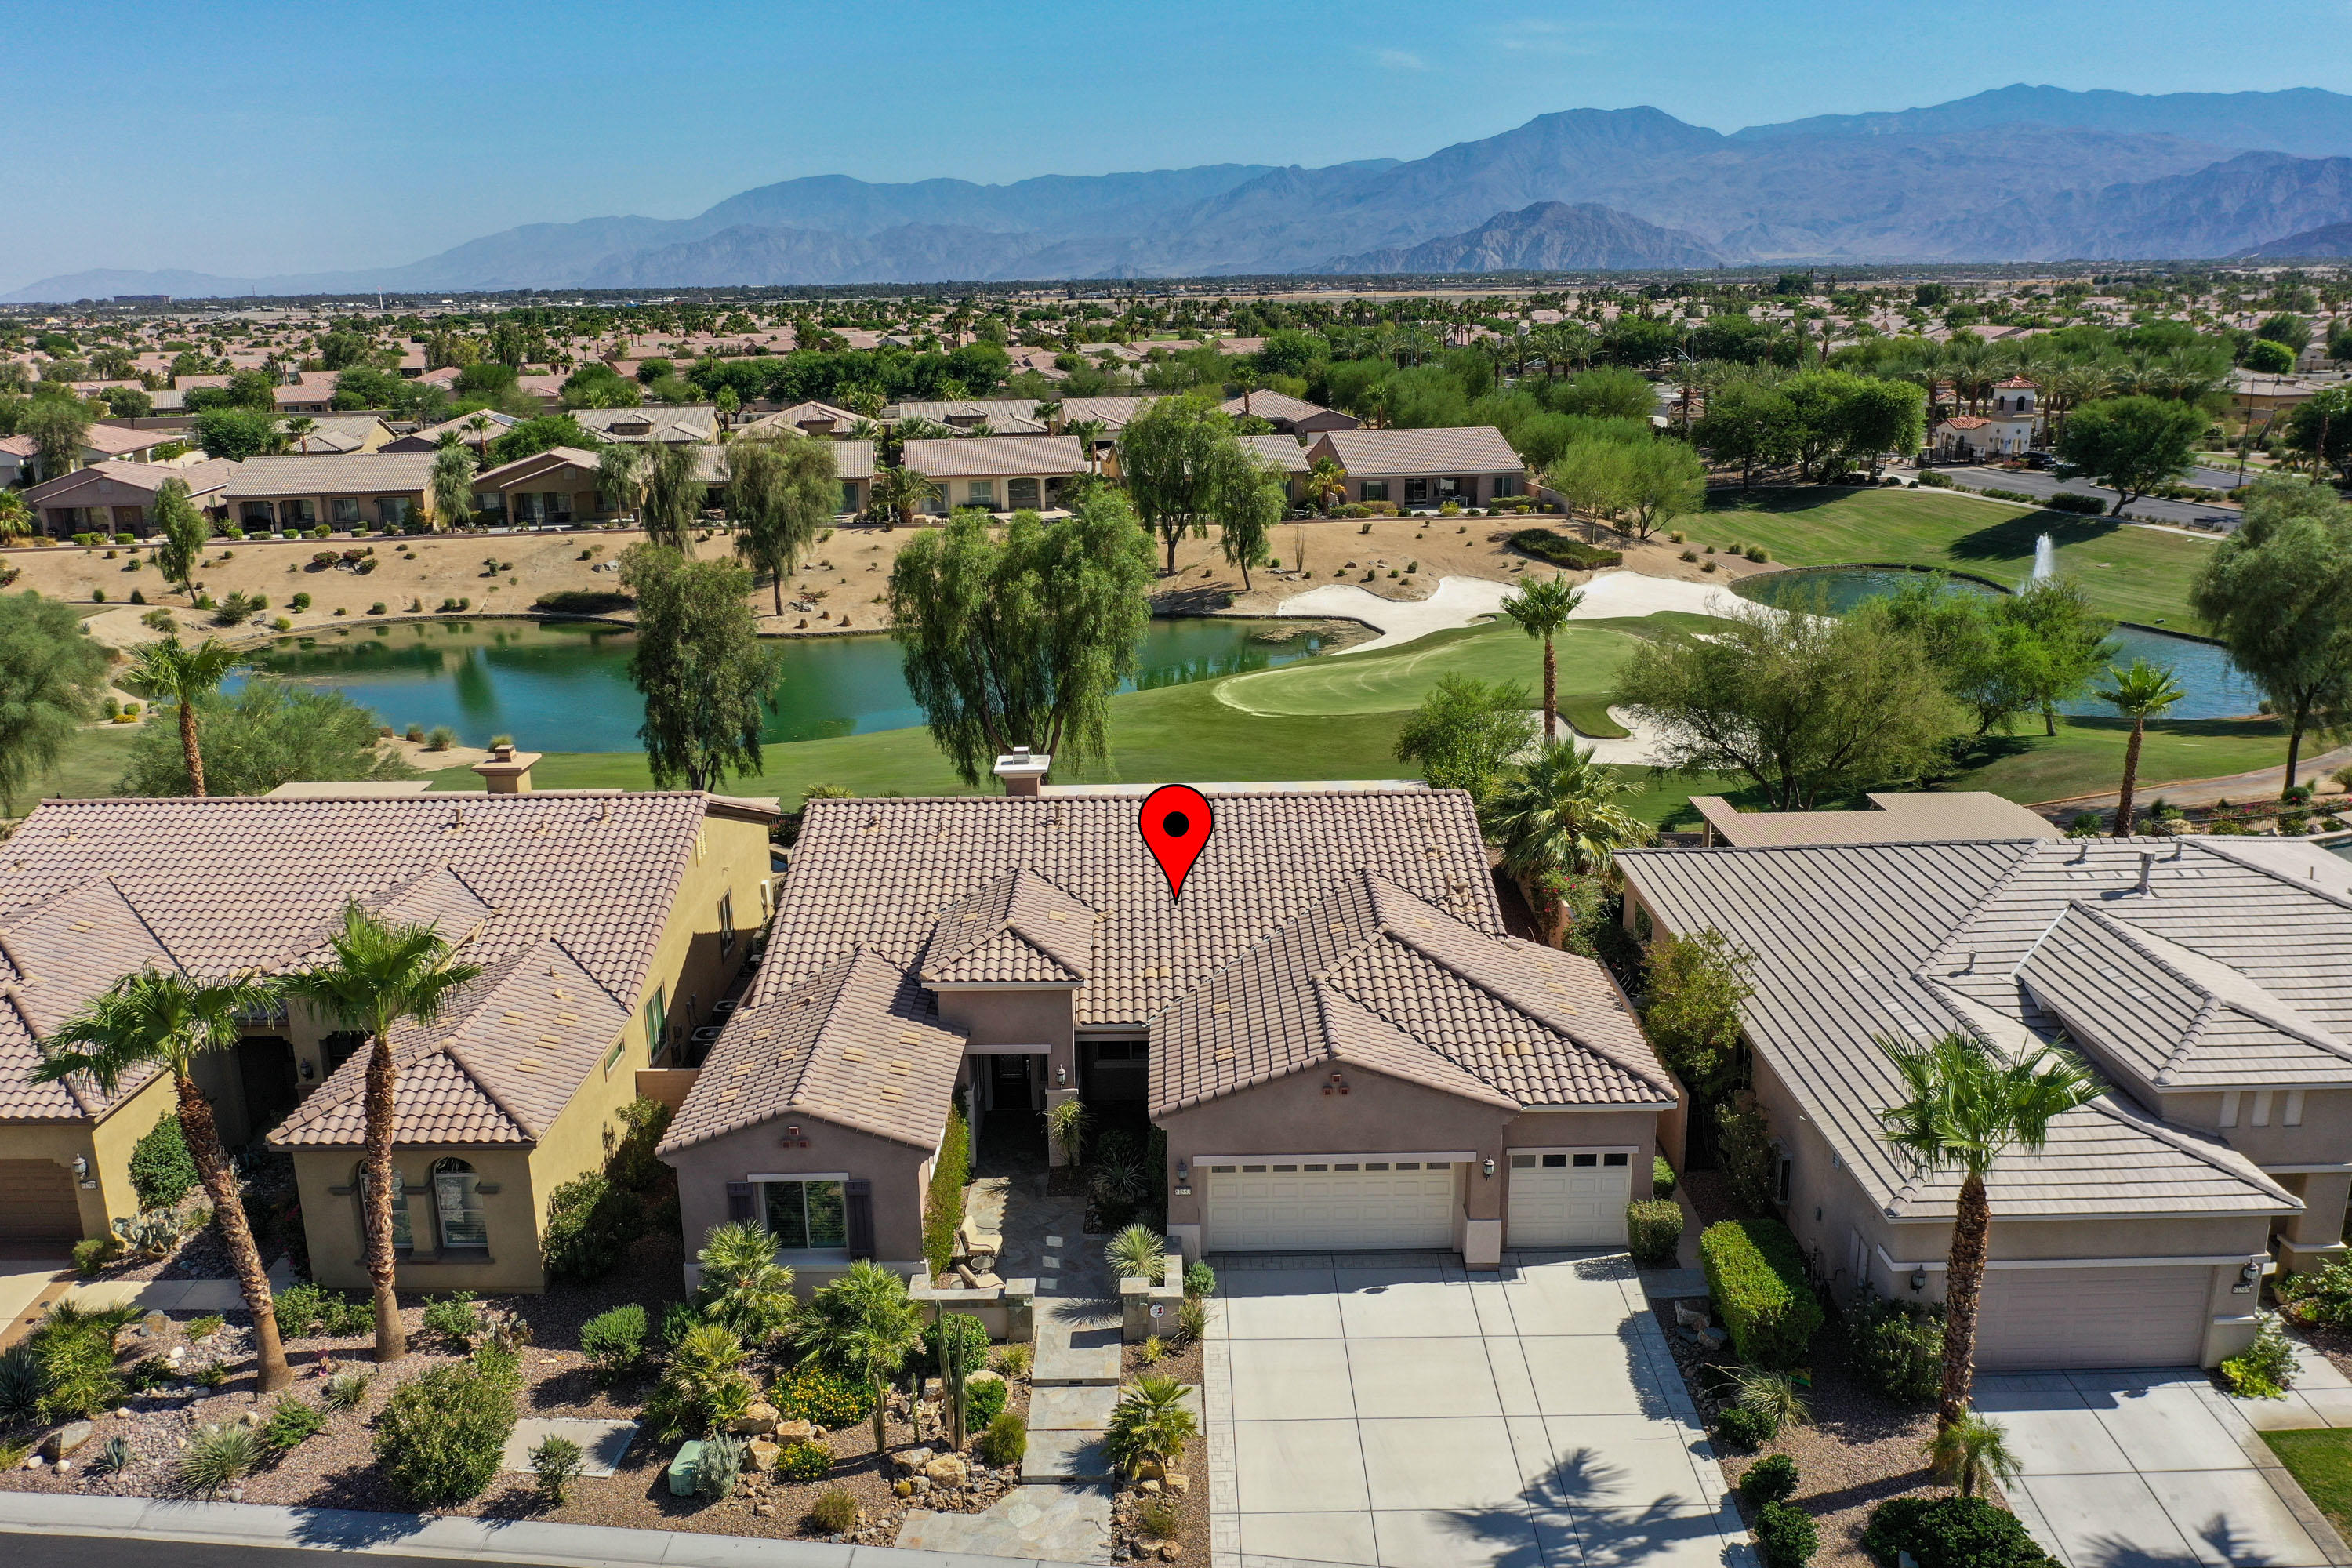 This wonderful South facing waterfront property features an extraordinary Dorado floor plan built high above a lake and a golf course green! It is like stadium seating as below you golfers putt out on the 6th hole of the renowned Executive Par 3 Course. The patio has been transformed into a desert out-door living room with a flagstone deck, extended Alumawood cover above, a large BBQ Island & a fire-pit. Sunsets and lingering twilight skies are spectacular. The impressive entry courtyard has a flagstone finished deck and a cut-glass front door.  Inside there is tile flooring laid on the diagonal, designer paint on walls, plantation shutters & custom covers on windows and fans on soaring ceilings. The kitchen has beautiful granite countertops, quality dark cabinets that frame stainless steel appliances to create a stunning look. The open great room has a cozy gas fireplace for those cool winter evenings. The master suite has patio access, dual vanities, an oval tub, a separate glass enclosed shower and a generous walk-in closet. The 3 car garage has a finished floor, an A/C unit, a water softener, windows & a tankless-instant hot water unit. Much more.  Everything like new and meticulously finished to please the most discriminating buyer who expects quality and loves perfection!